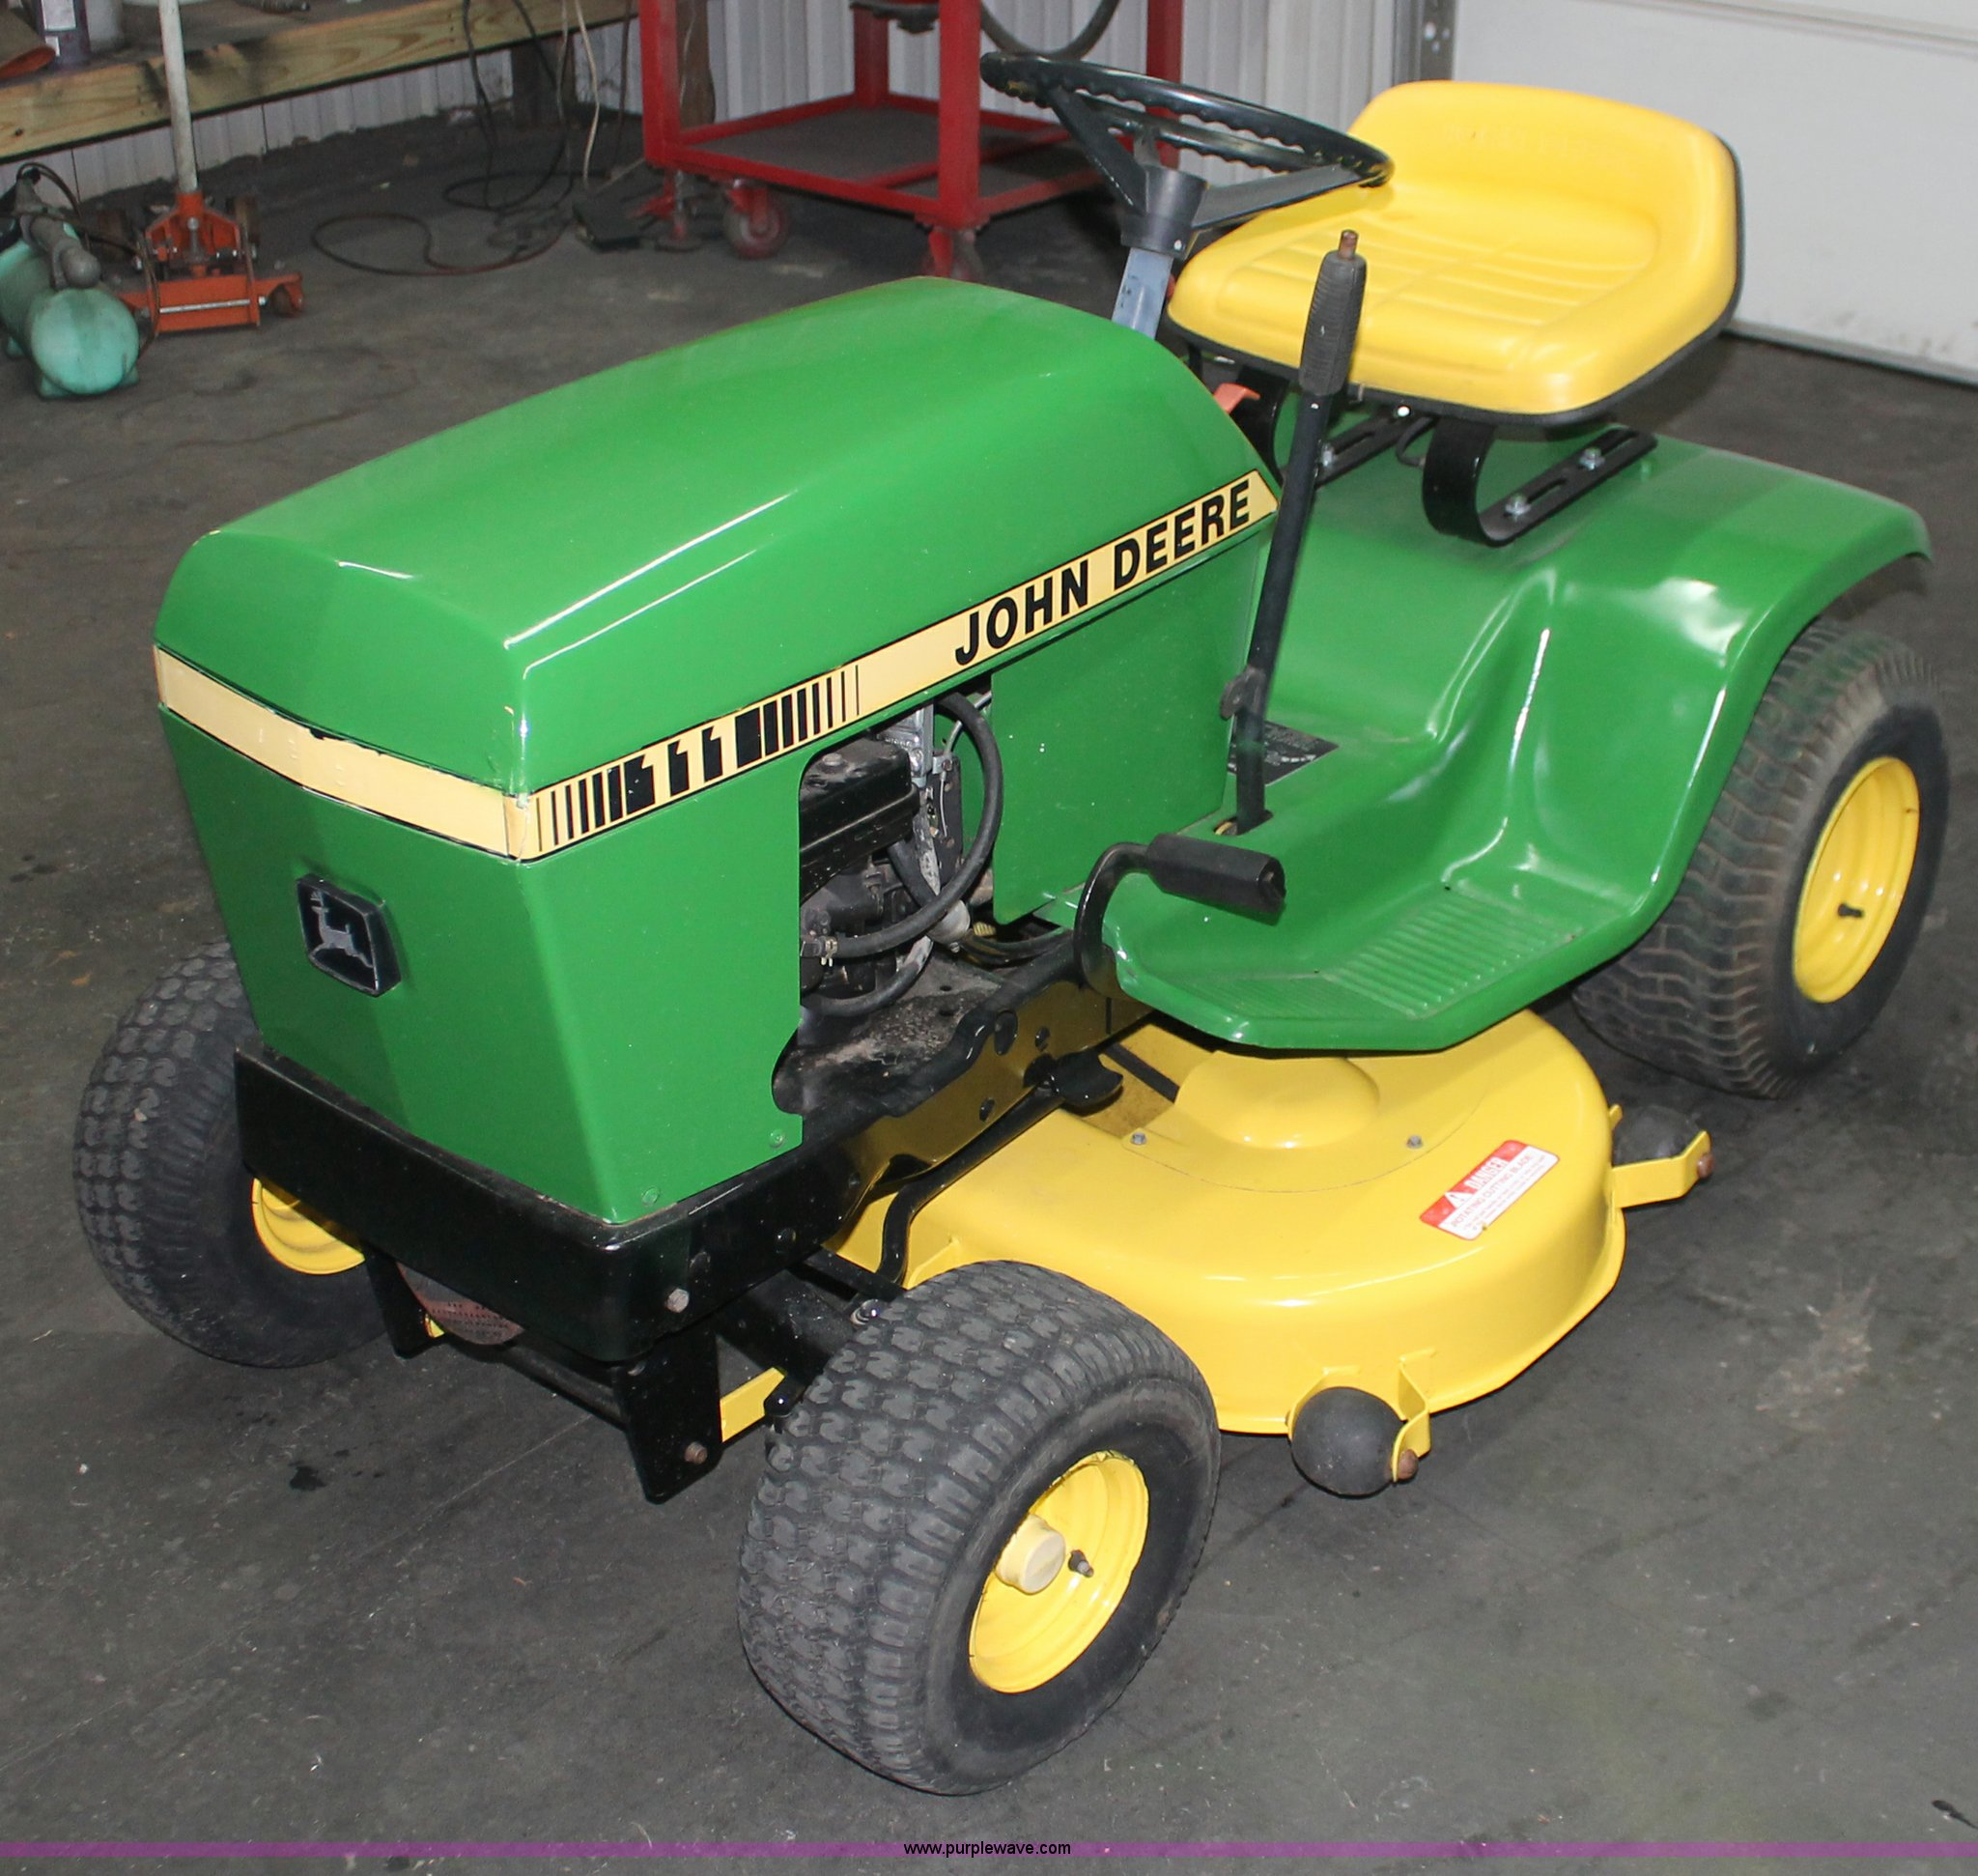 john deere 111 lawn mower item v9245 sold wednesday feb rh purplewave com john deere 111 riding lawn mower manual john deere 111 lawn mower parts